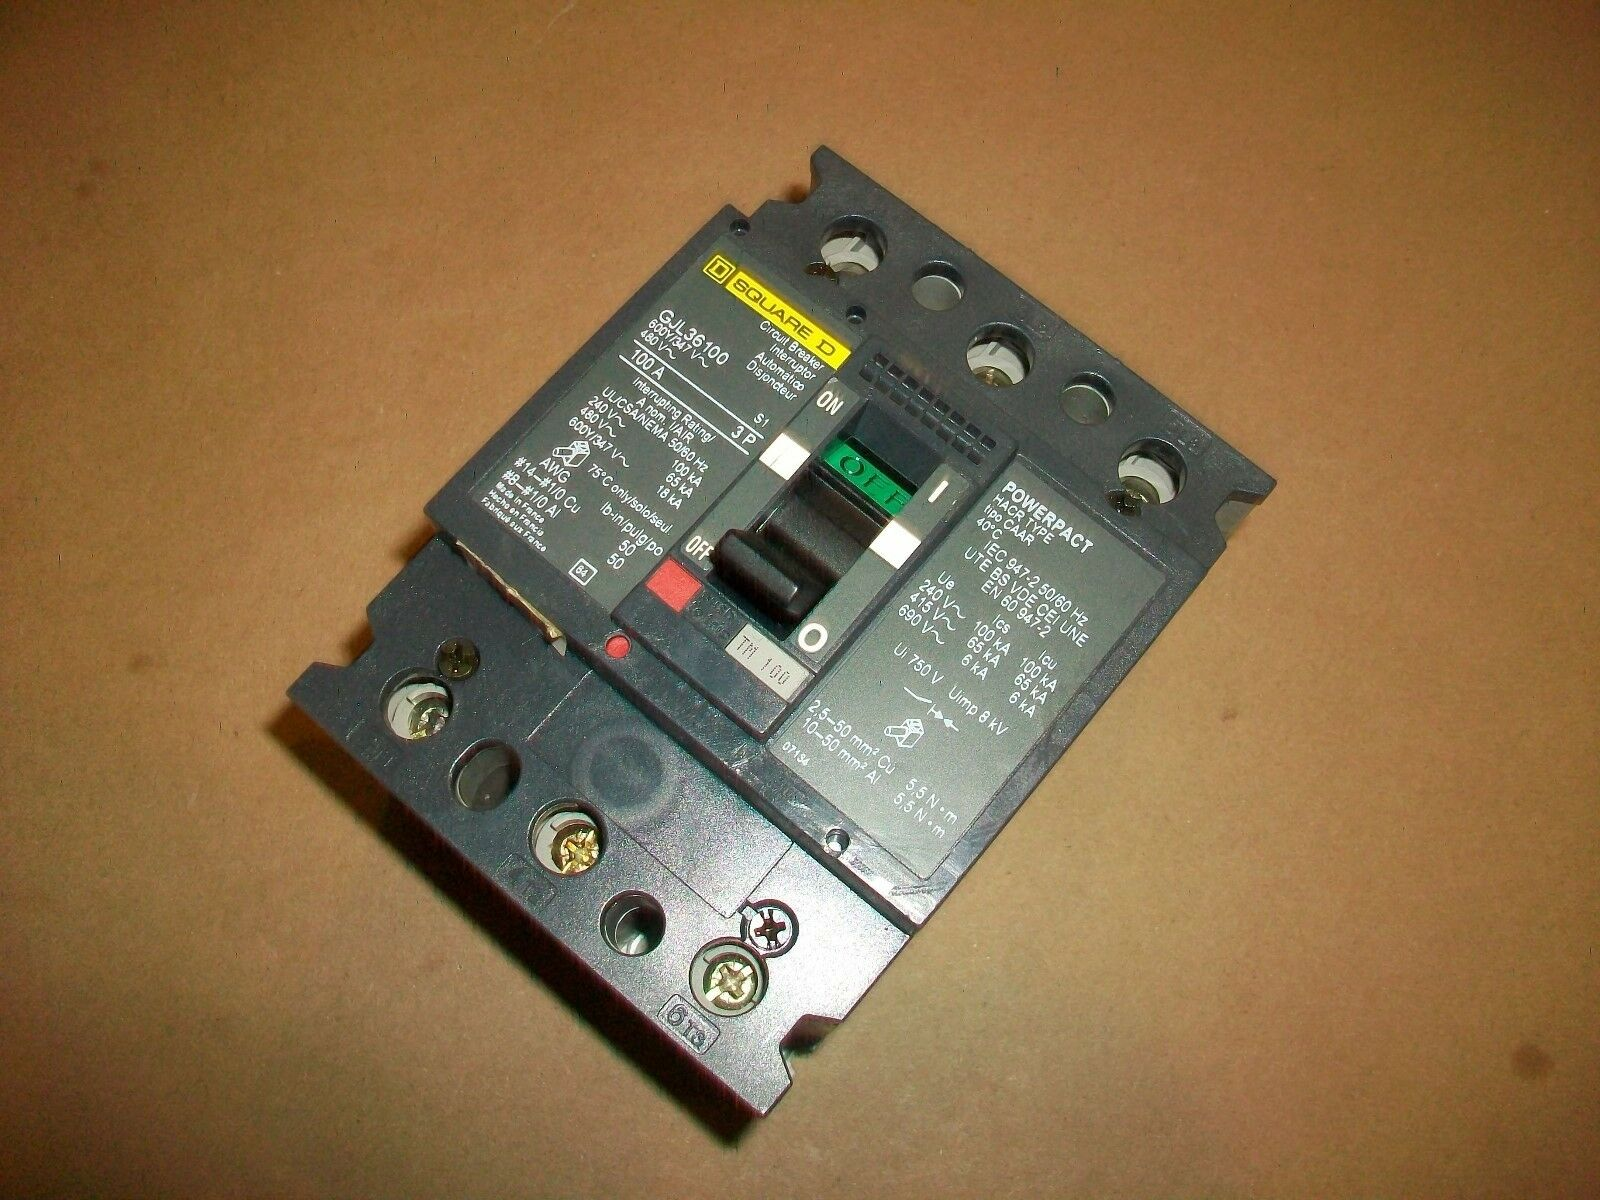 Square D Gjl Gjl36100 3 Pole 100 Amp 600v Circuit Breaker Ebay Used Breakers Norton Secured Powered By Verisign